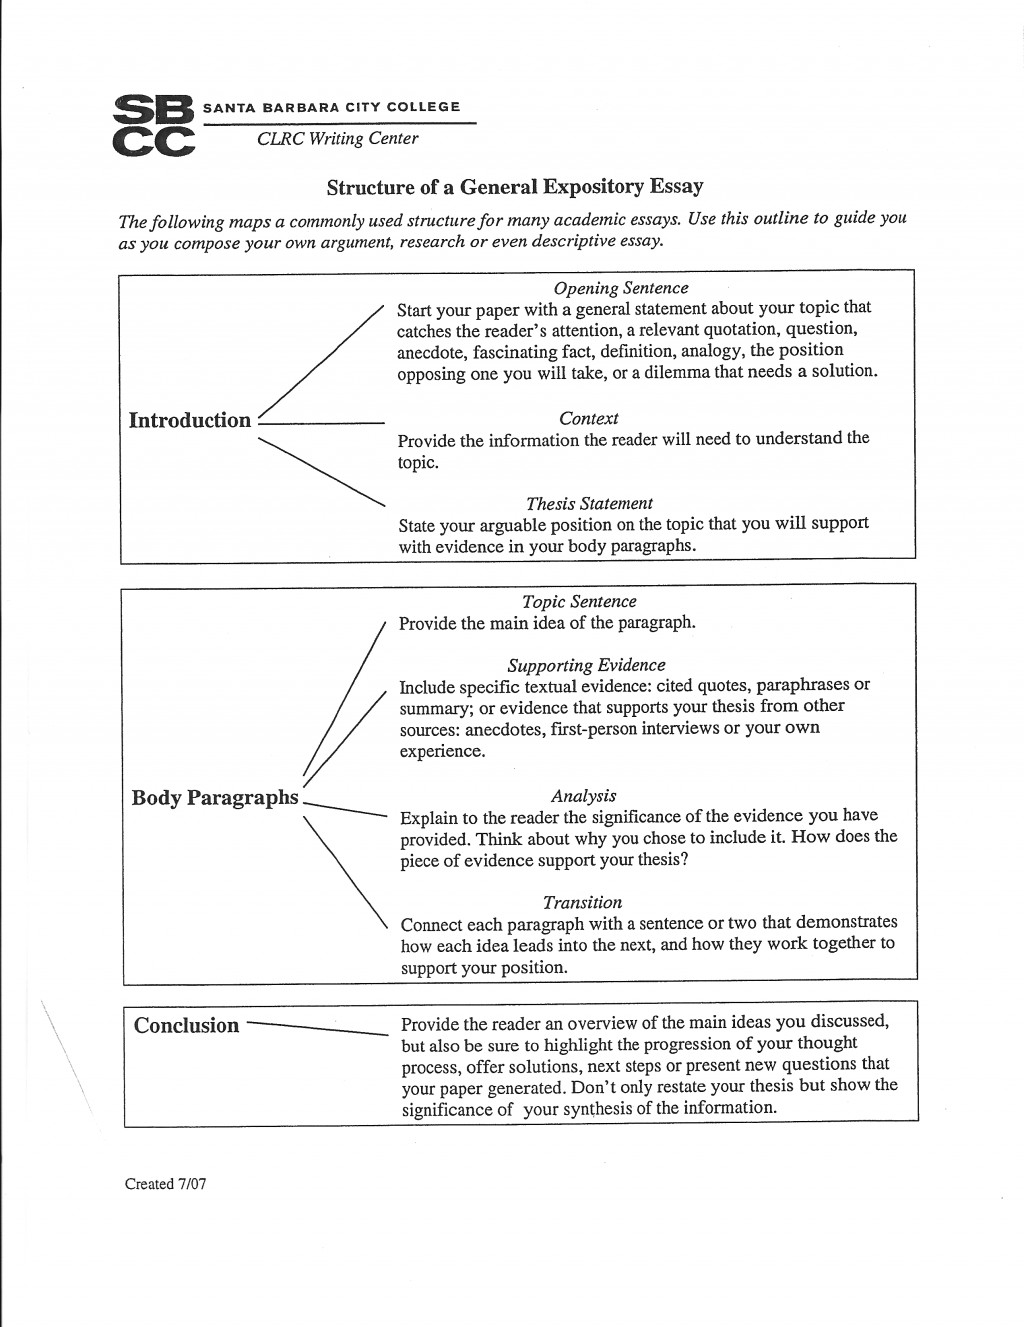 005 Essay Example An Outline For Informative Should Essays On Malaria To What Extent Structure Ielts Writing Thesis Exa Examples Remarkable After Creating A Student Brainly The Include Quizlet Large